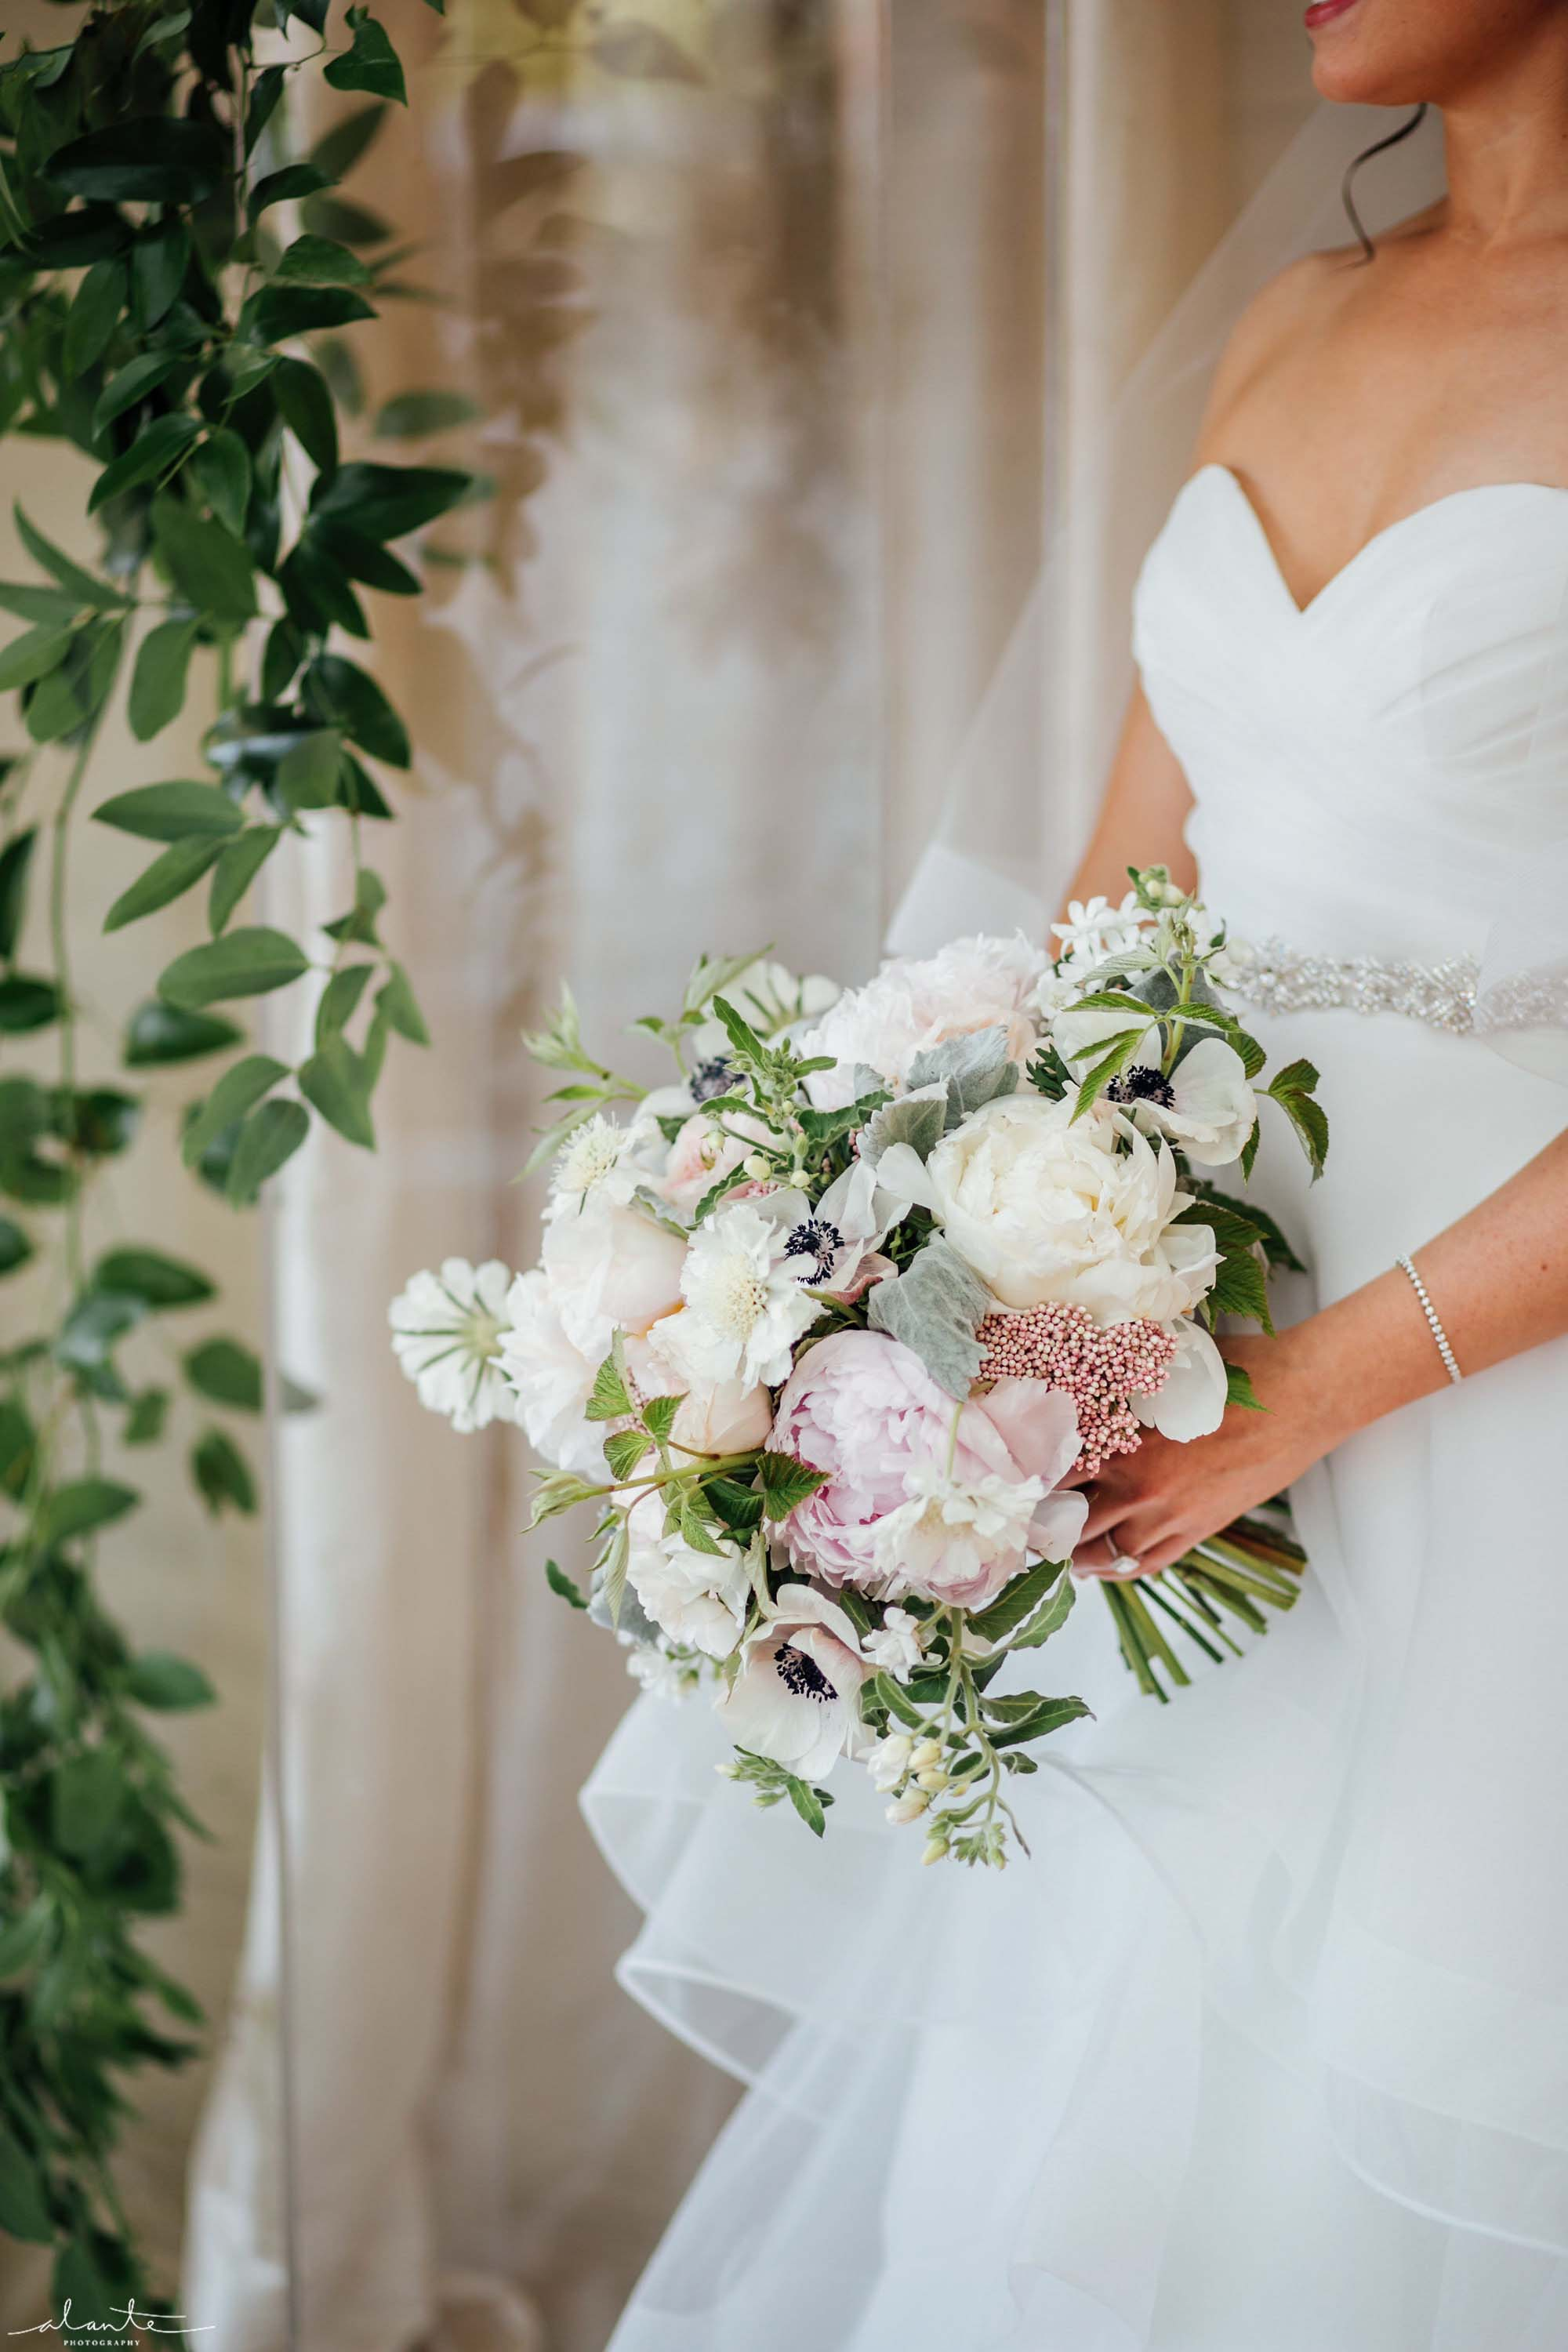 Romantic garden-style wedding bouquet with white and pink peonies, Olympic Rooftop Pavilion wedding with pink peonies by Flora Nova Design Seattle